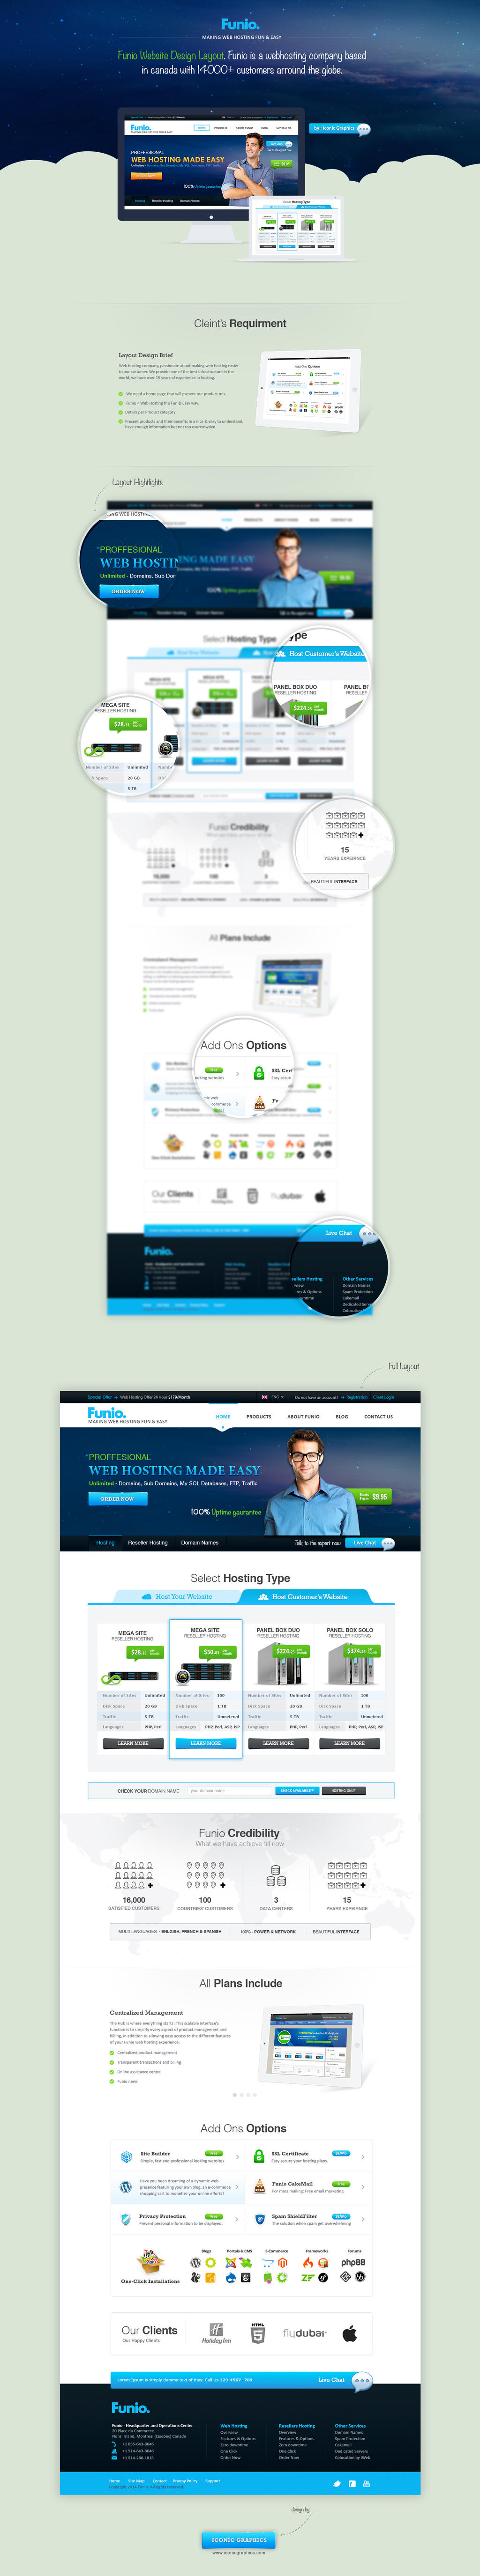 Funio Web Hosting - Website Layout Design by themerboy